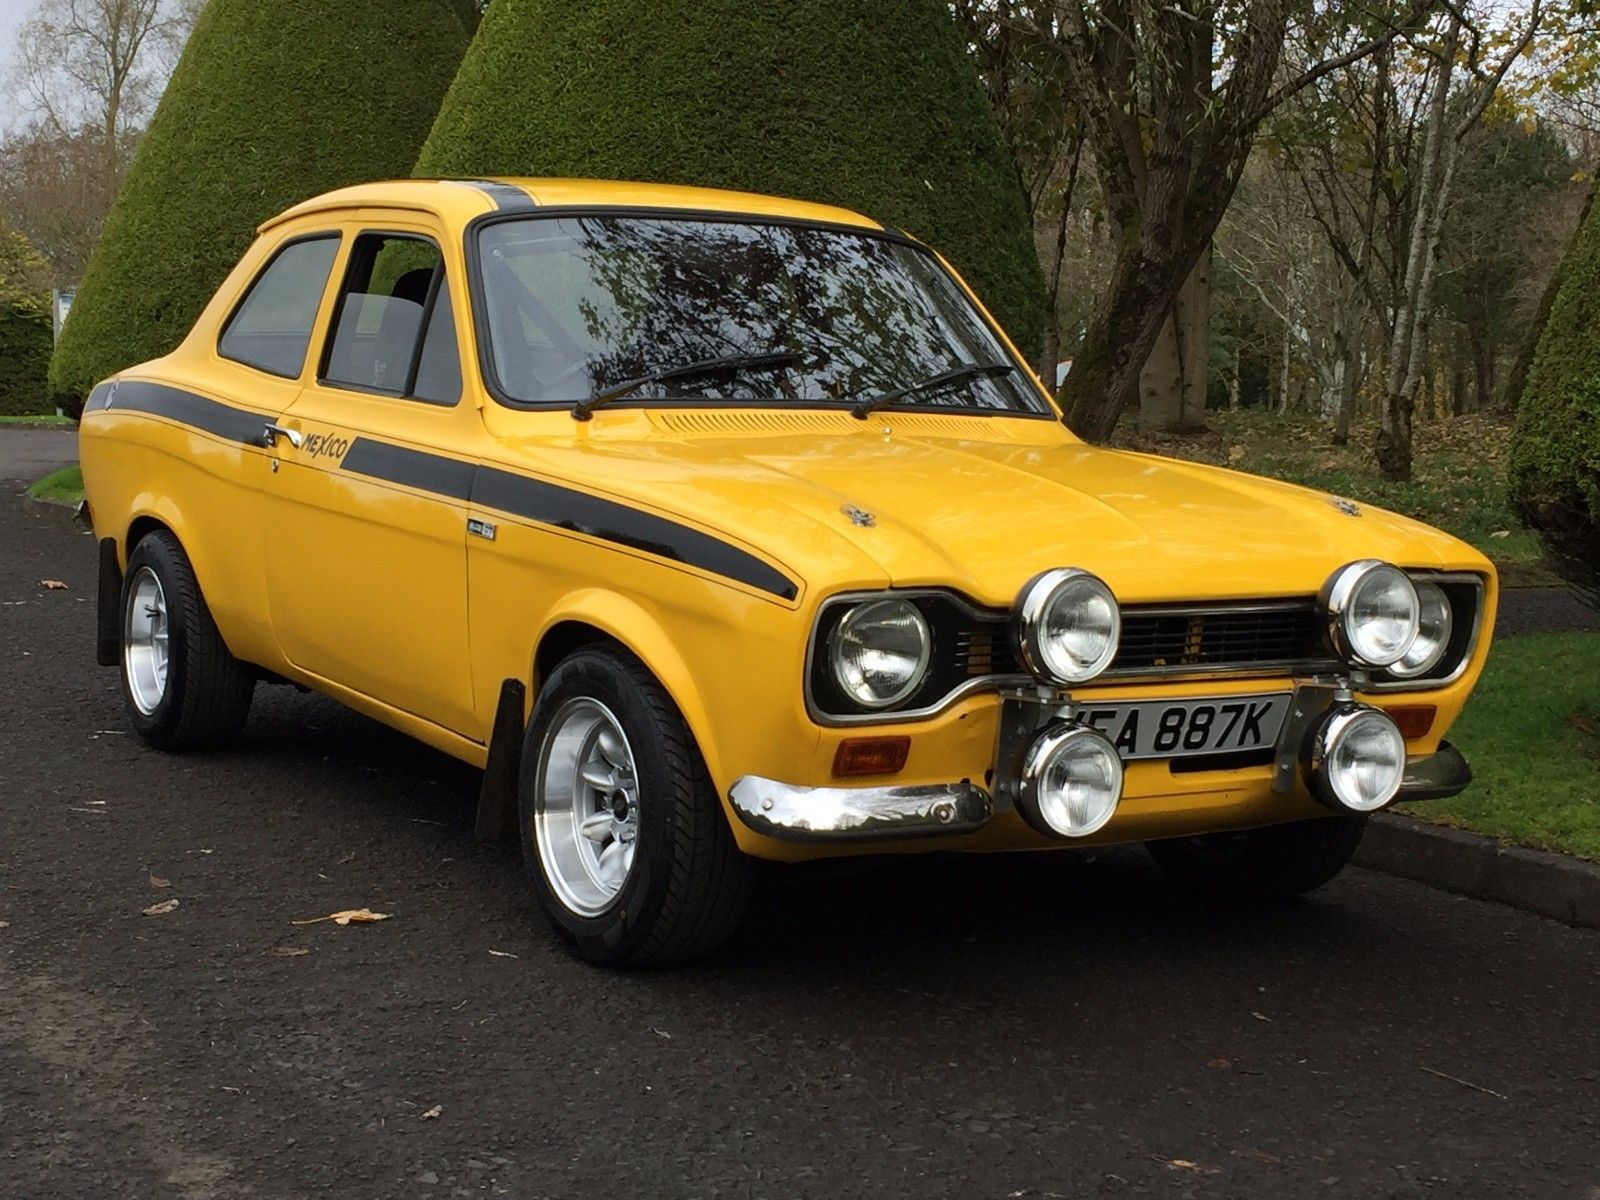 This 1971 ford escort mk 1 mexico daytona yellow rs is for sale ...